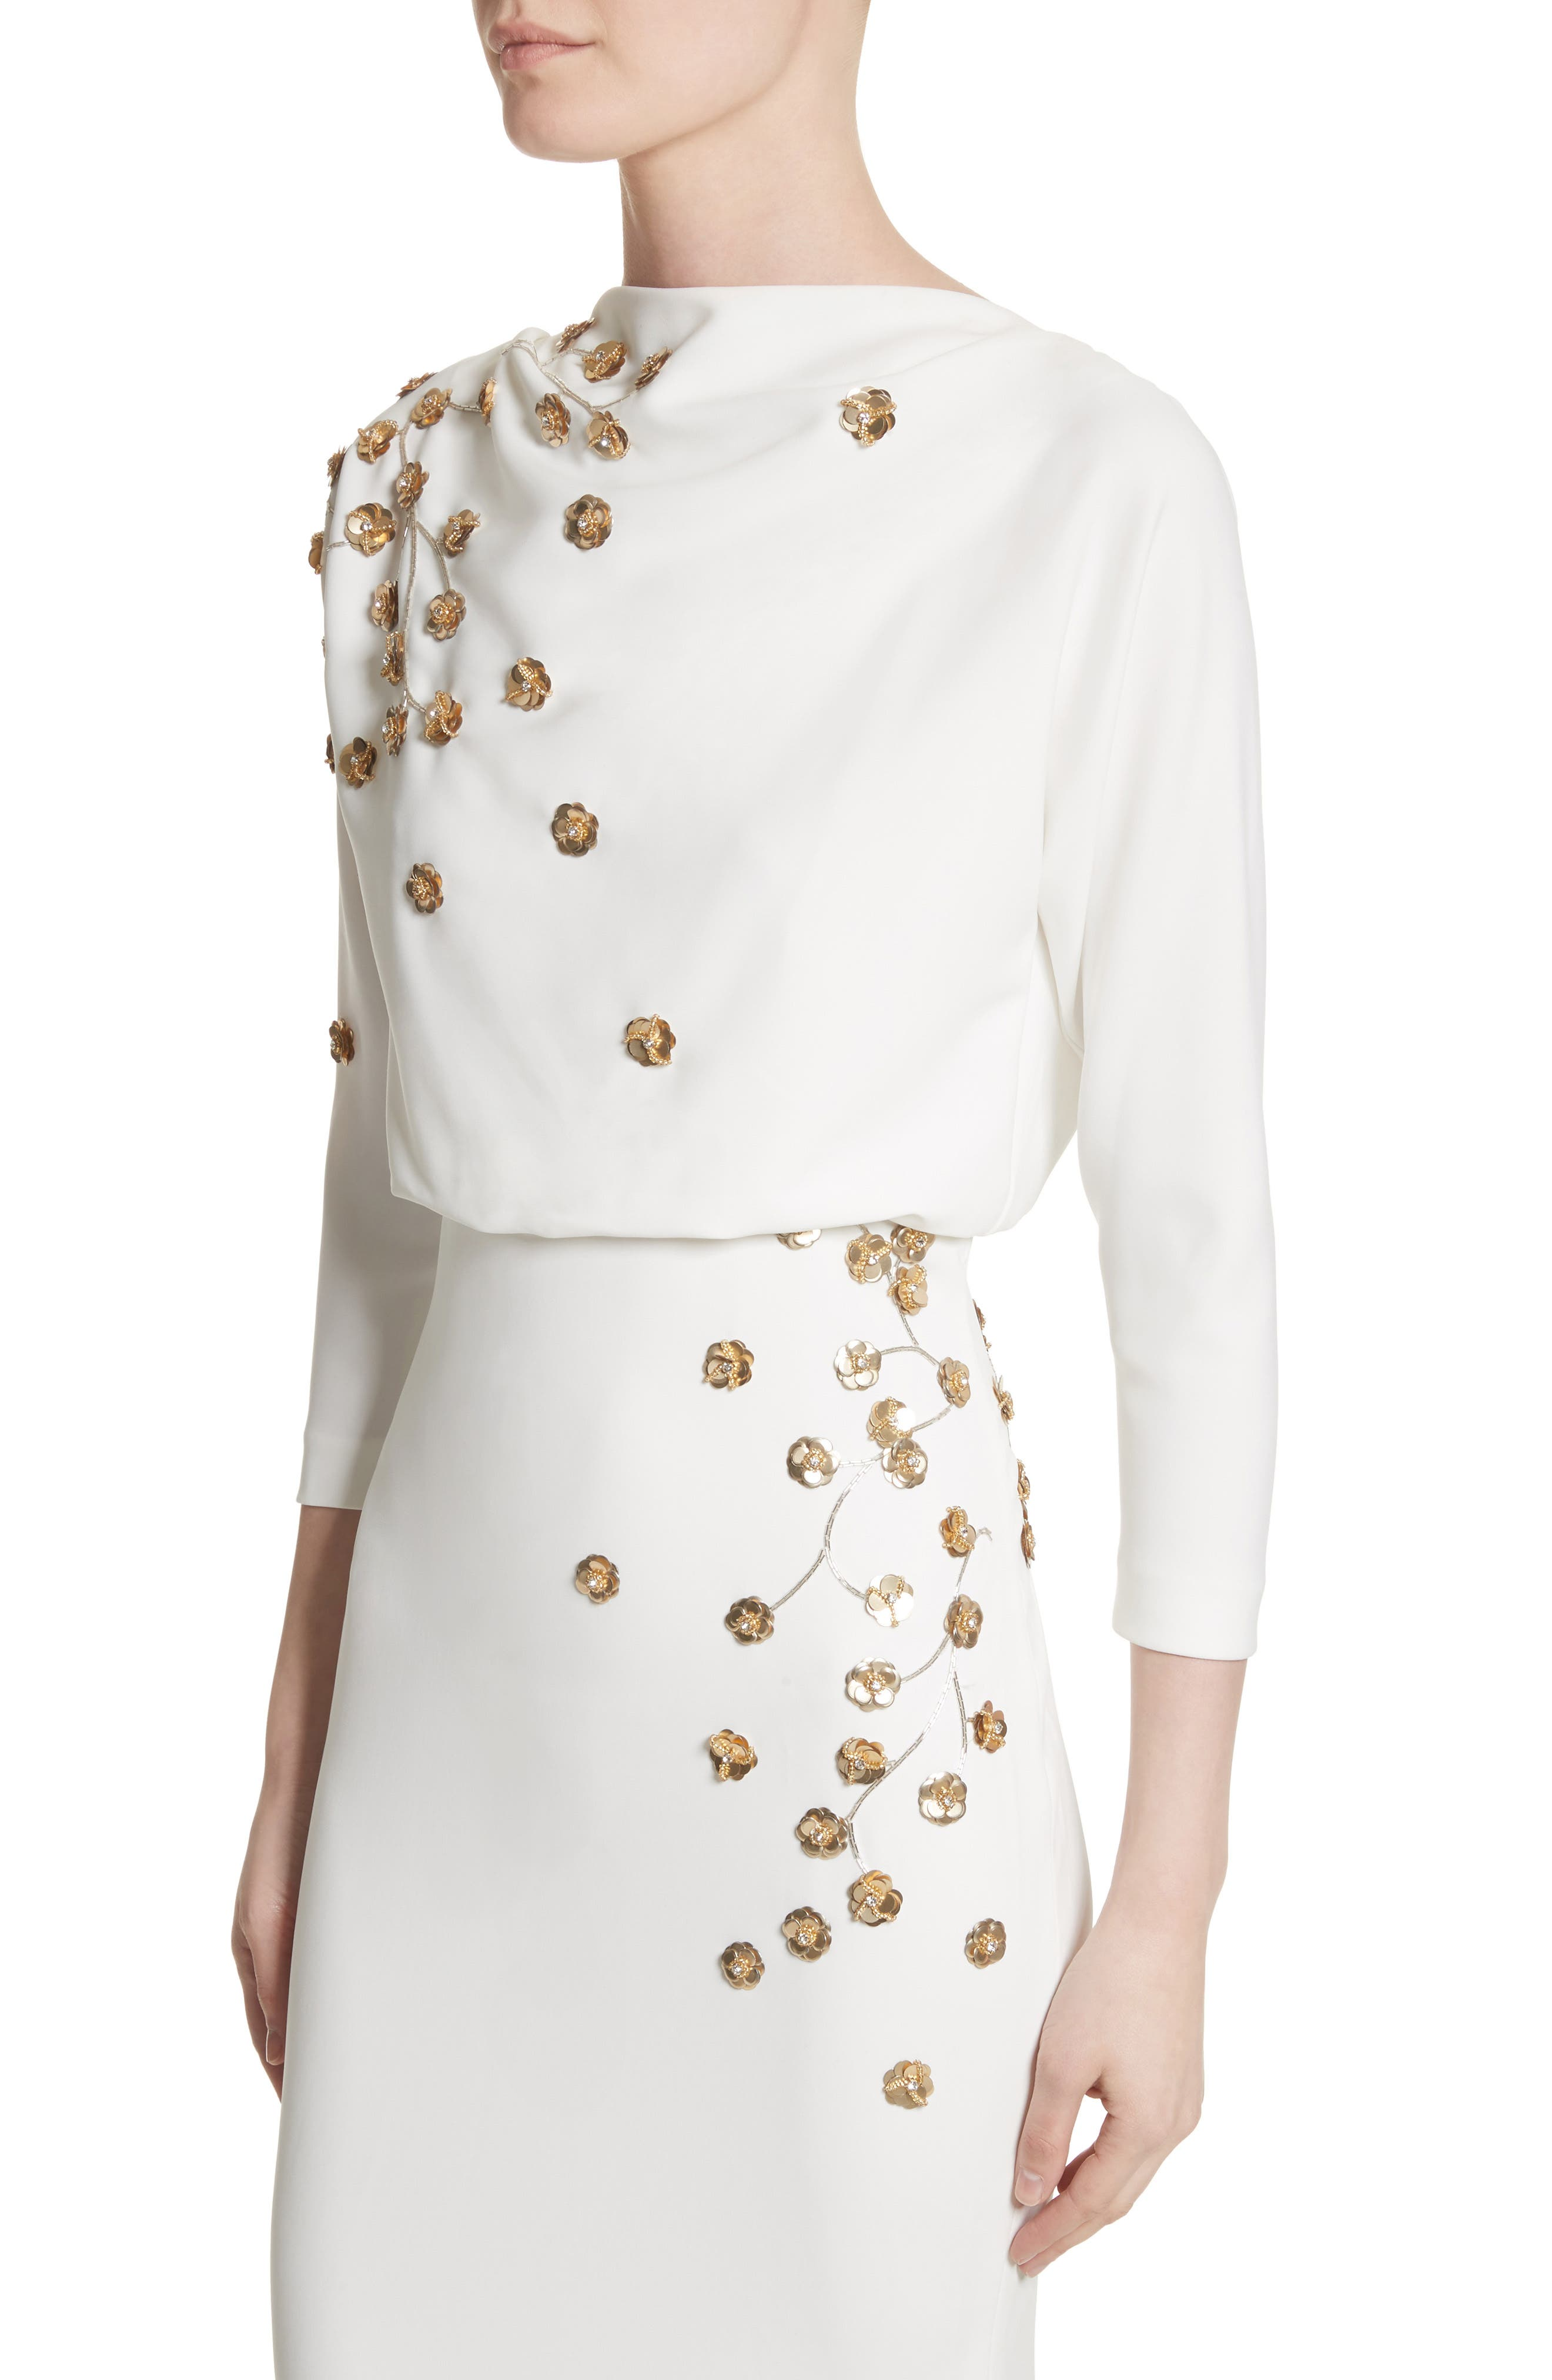 Badgley Mischka Couture Floral Embellished Crepe Gown,                             Alternate thumbnail 5, color,                             Light Ivory